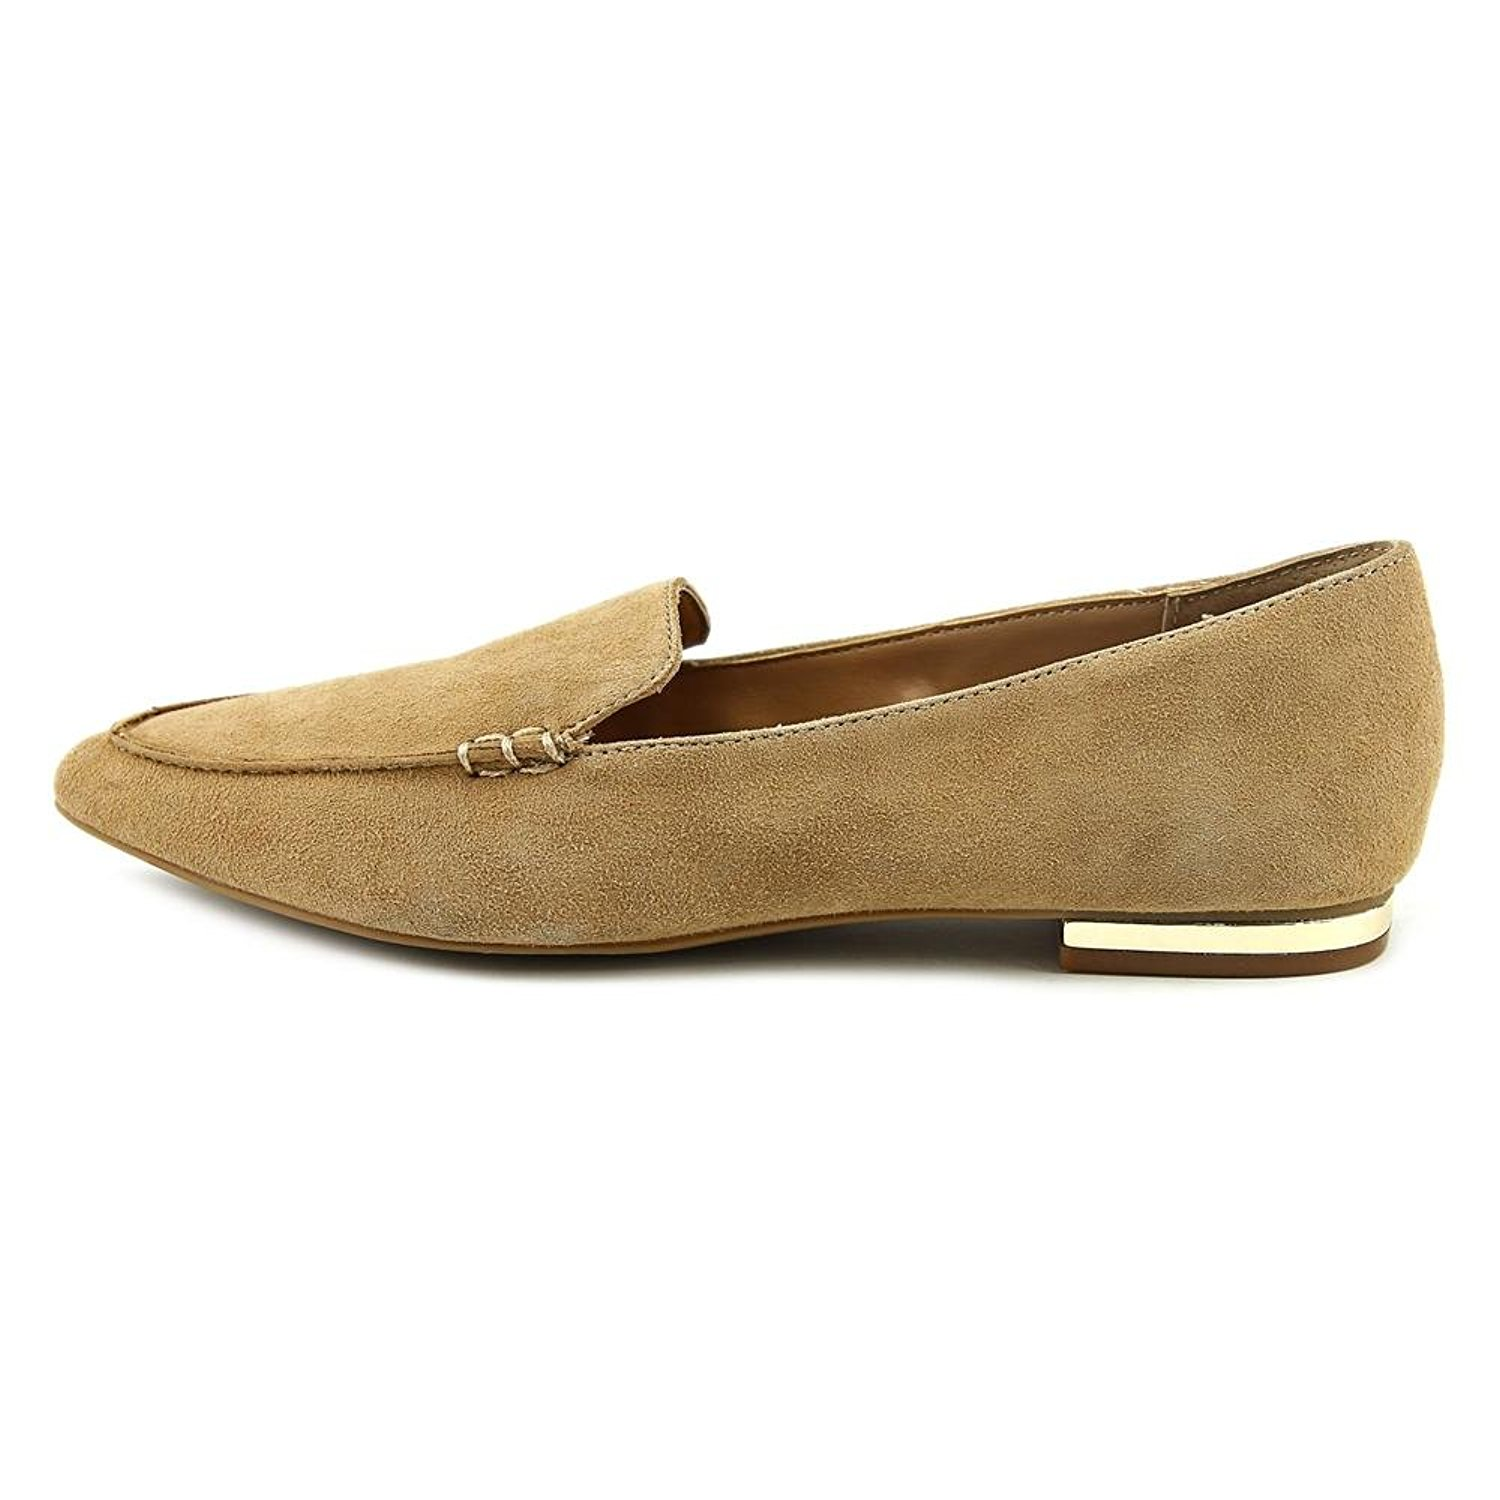 1bda9d17631 Steve Madden Womens Fausto Pointed Toe Loafers